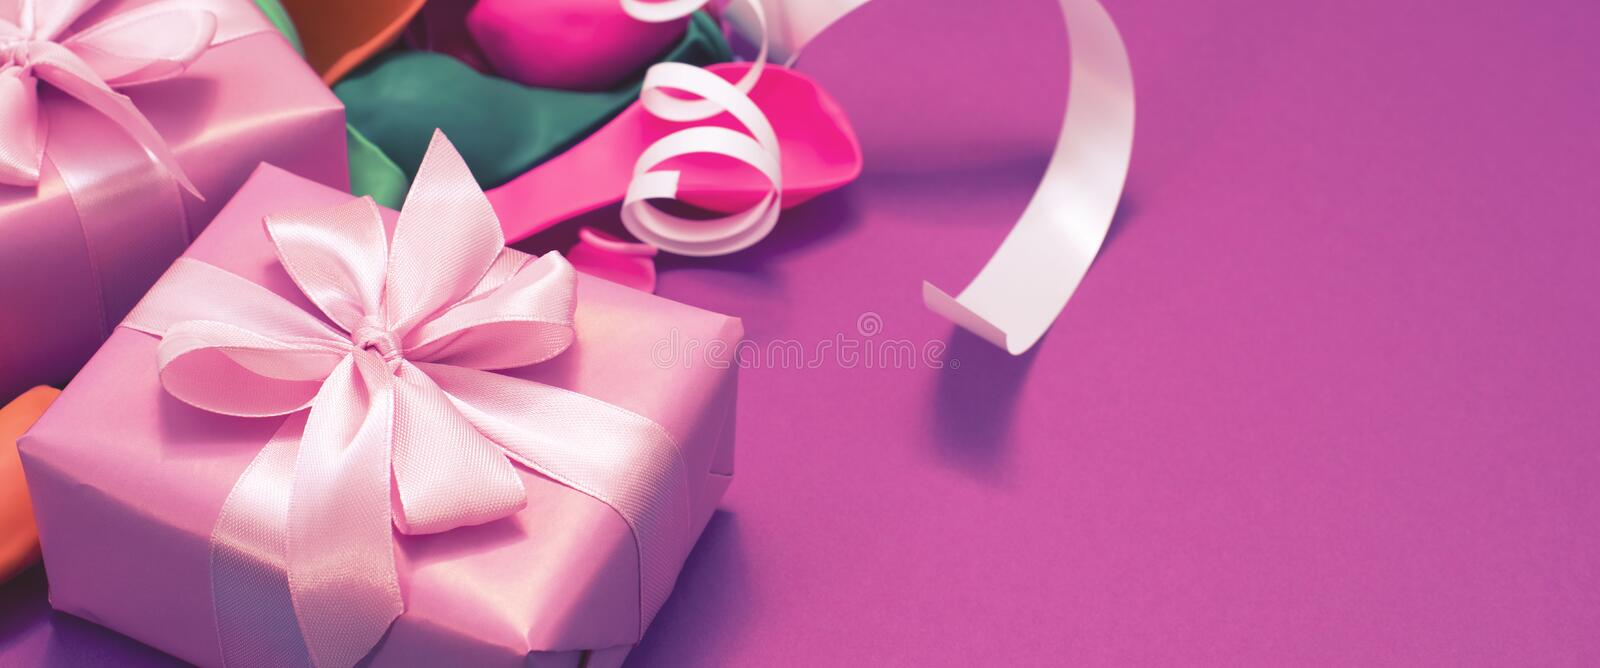 Banner Decorative box composition with gifts satin ribbon bow inflatable balls serpentine purple background A top view stock images